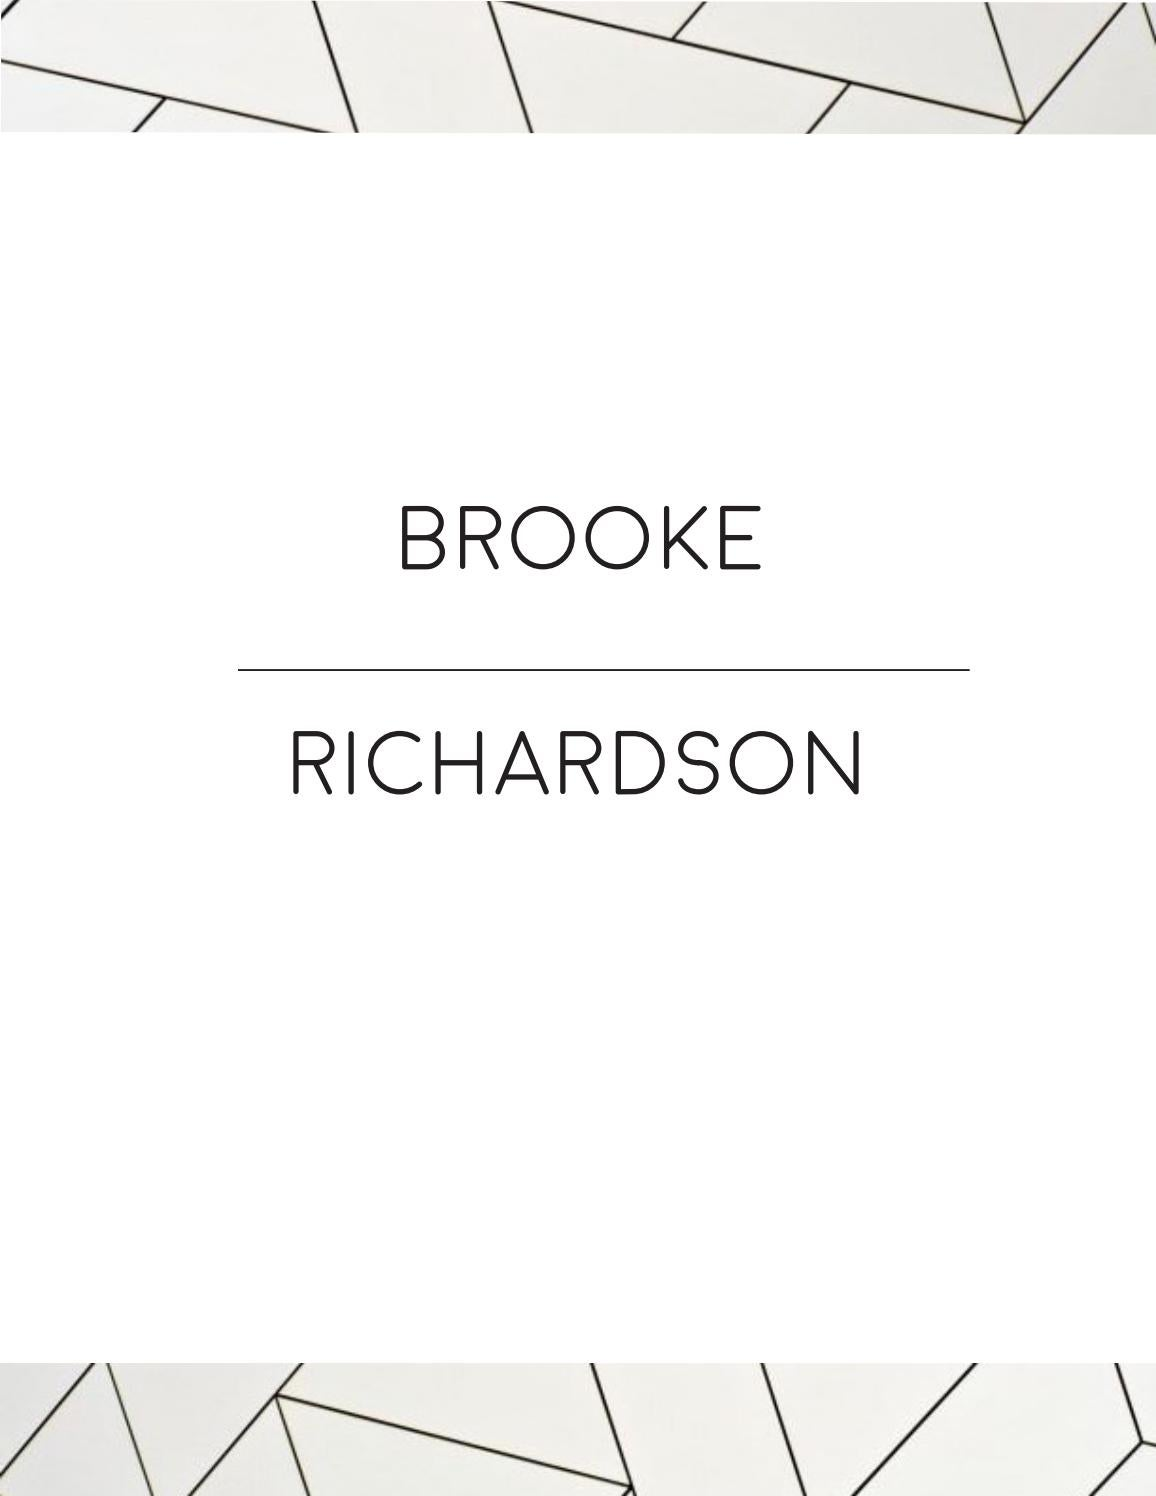 brookeminiportfolio by brooke richardson